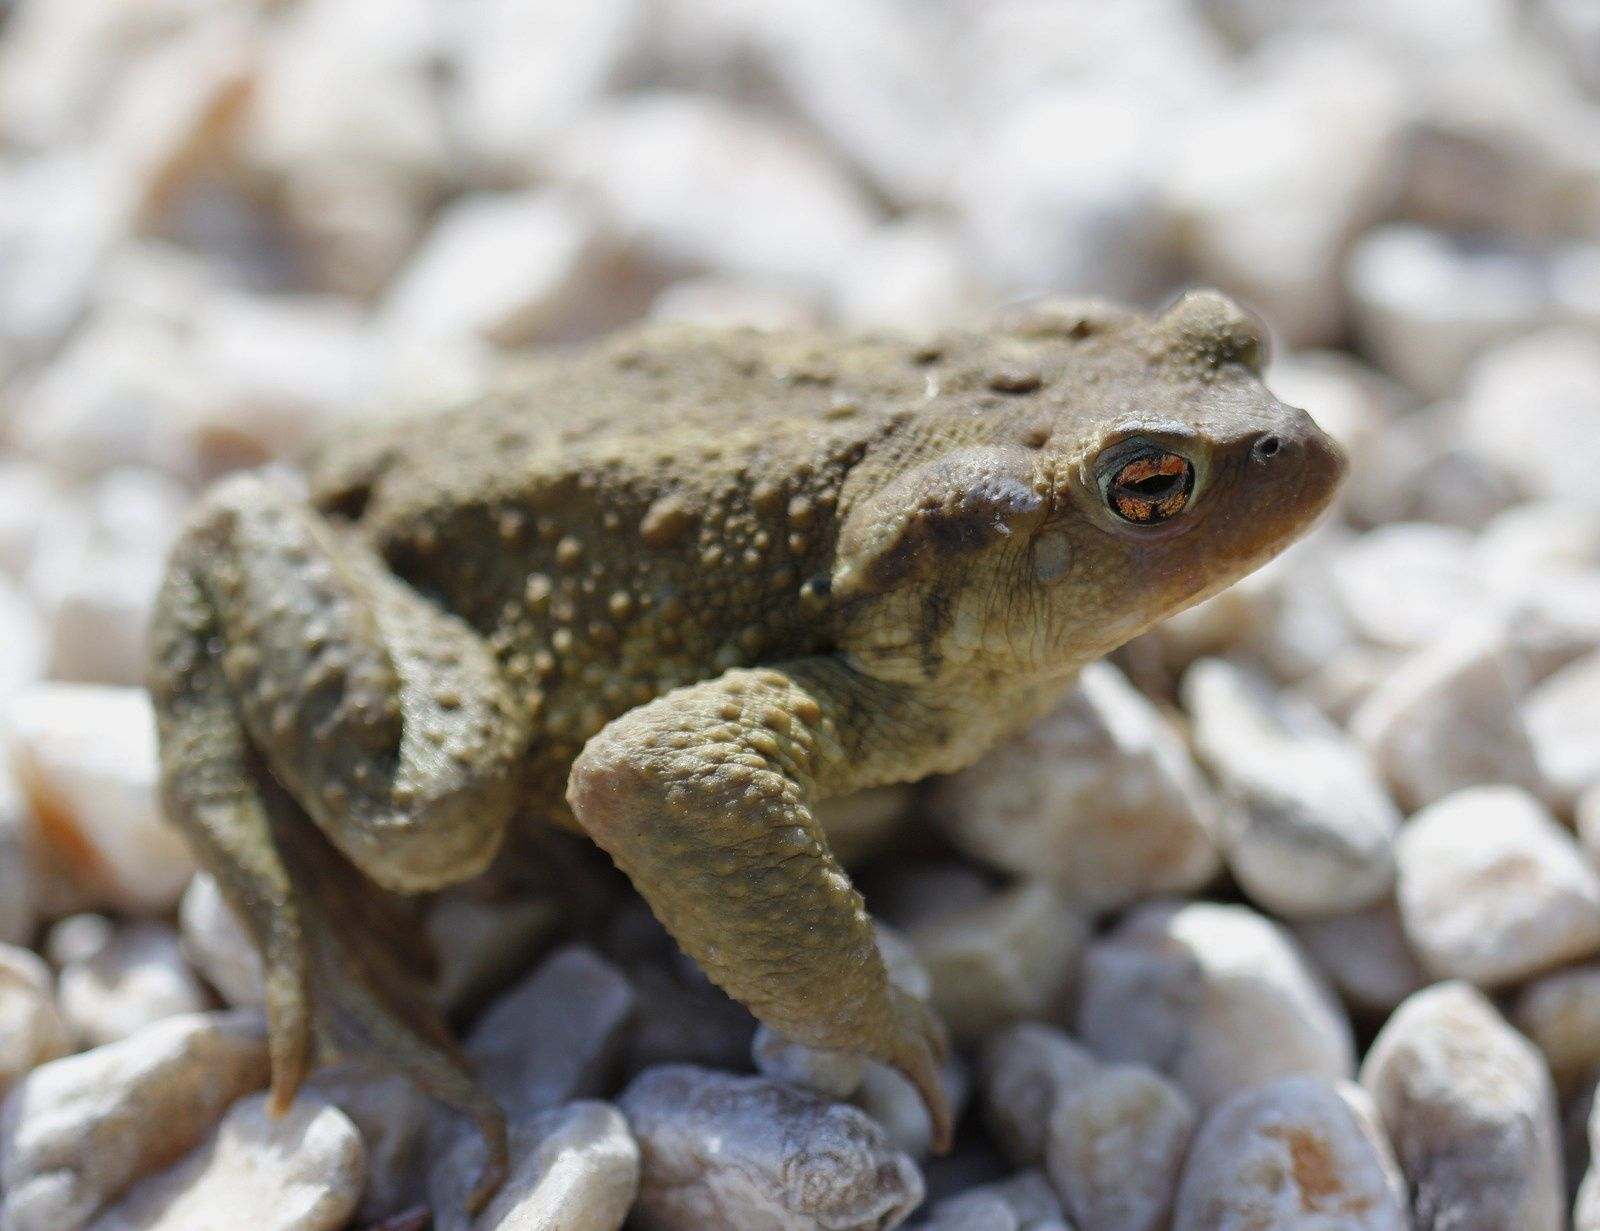 Le crapaud épineux - bufo bufo spinosus